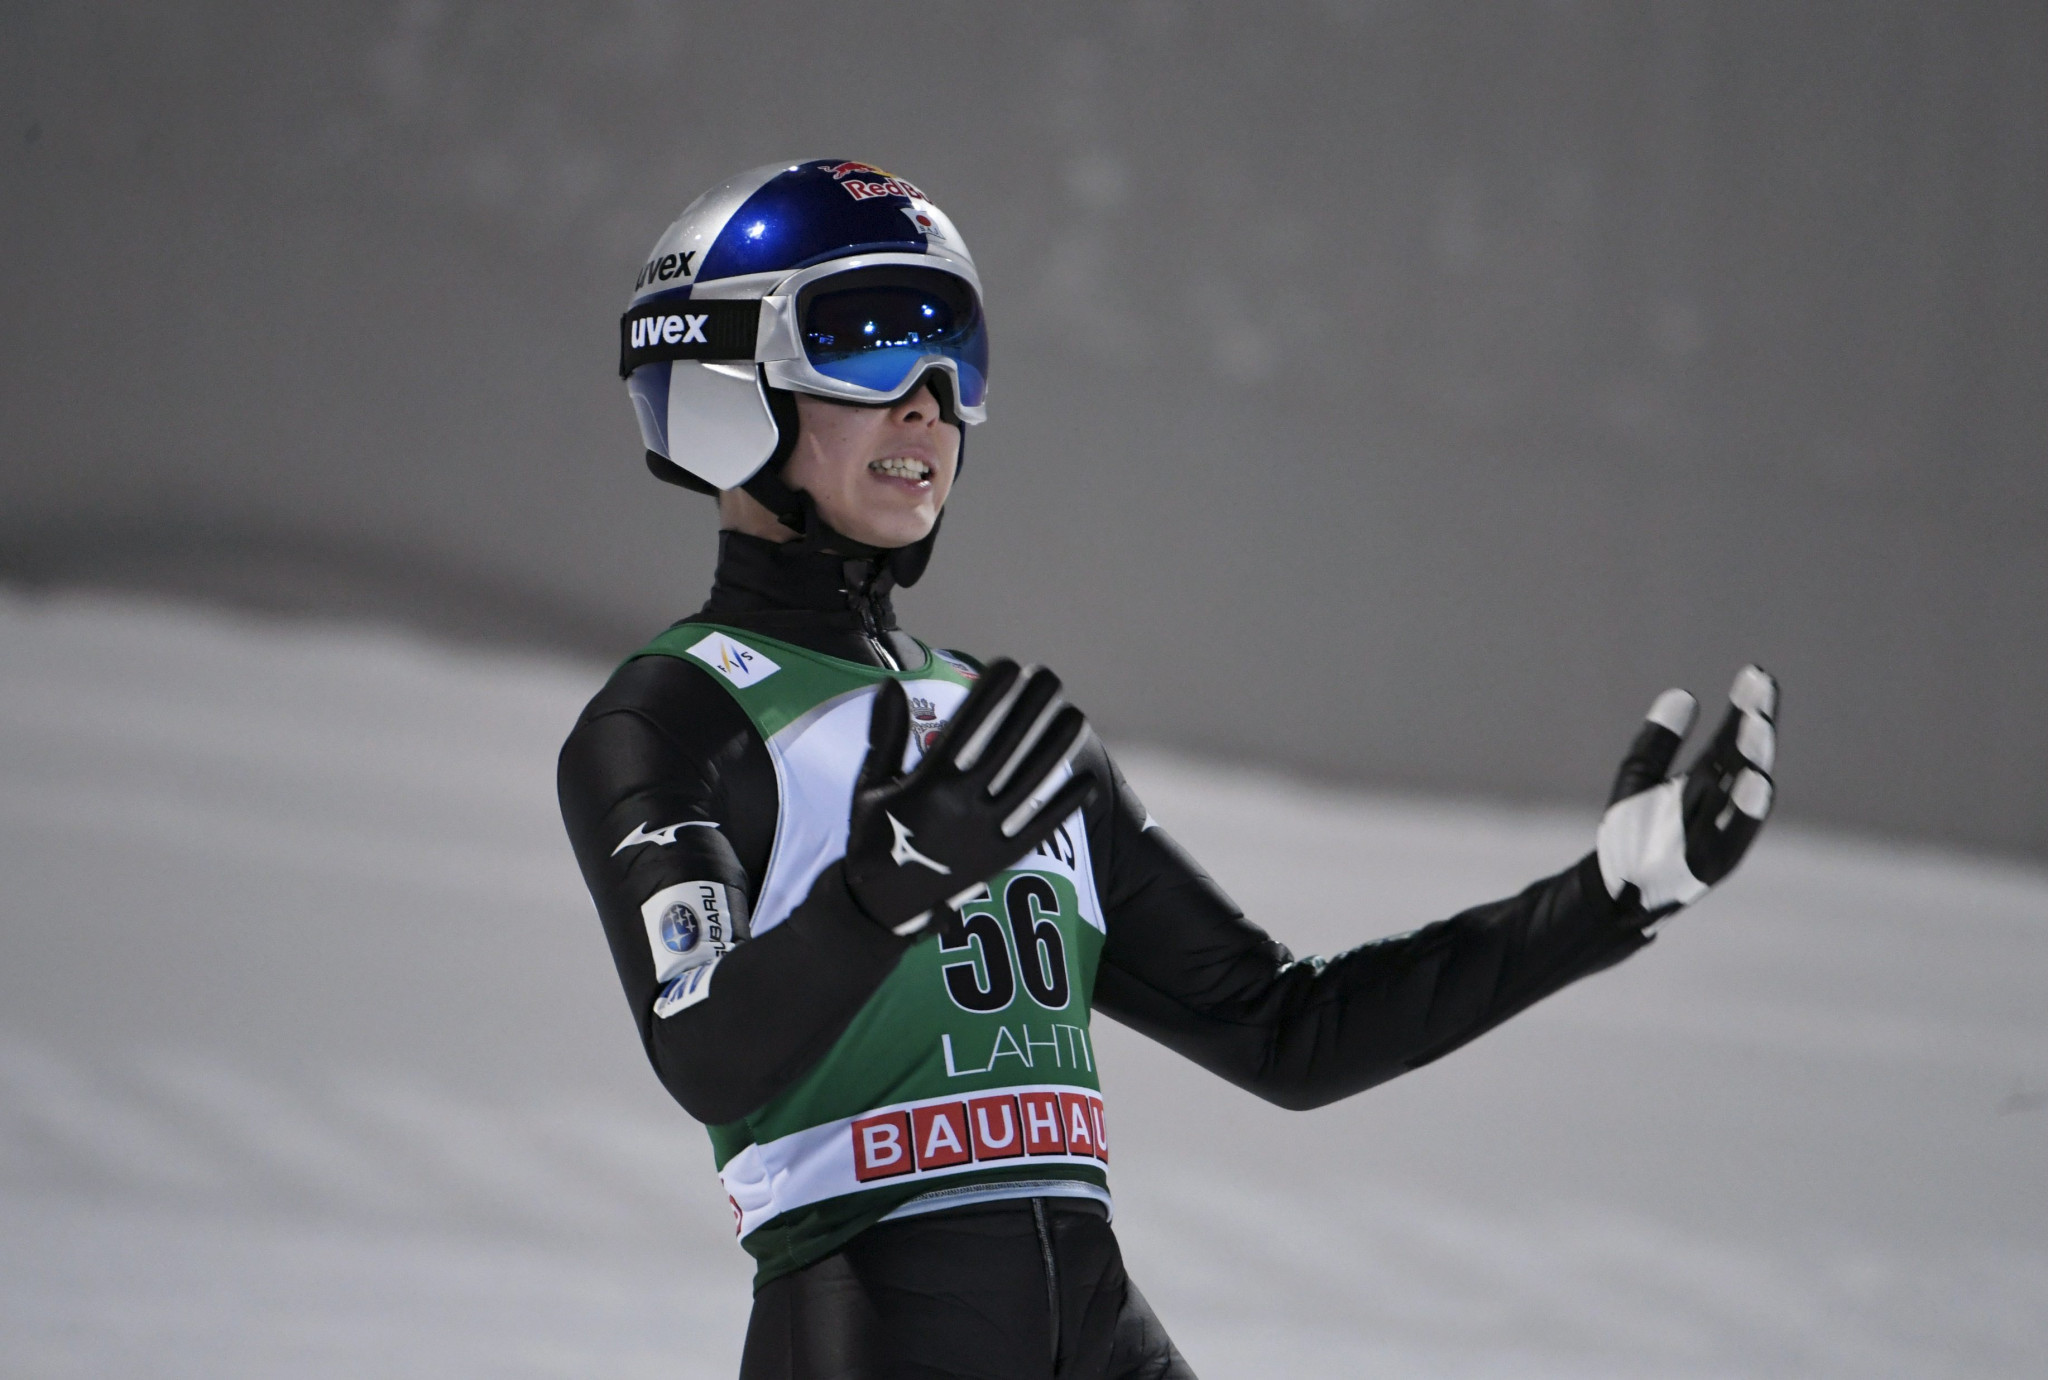 FIS Ski Jumping World Cup action in Oslo cancelled due to weather